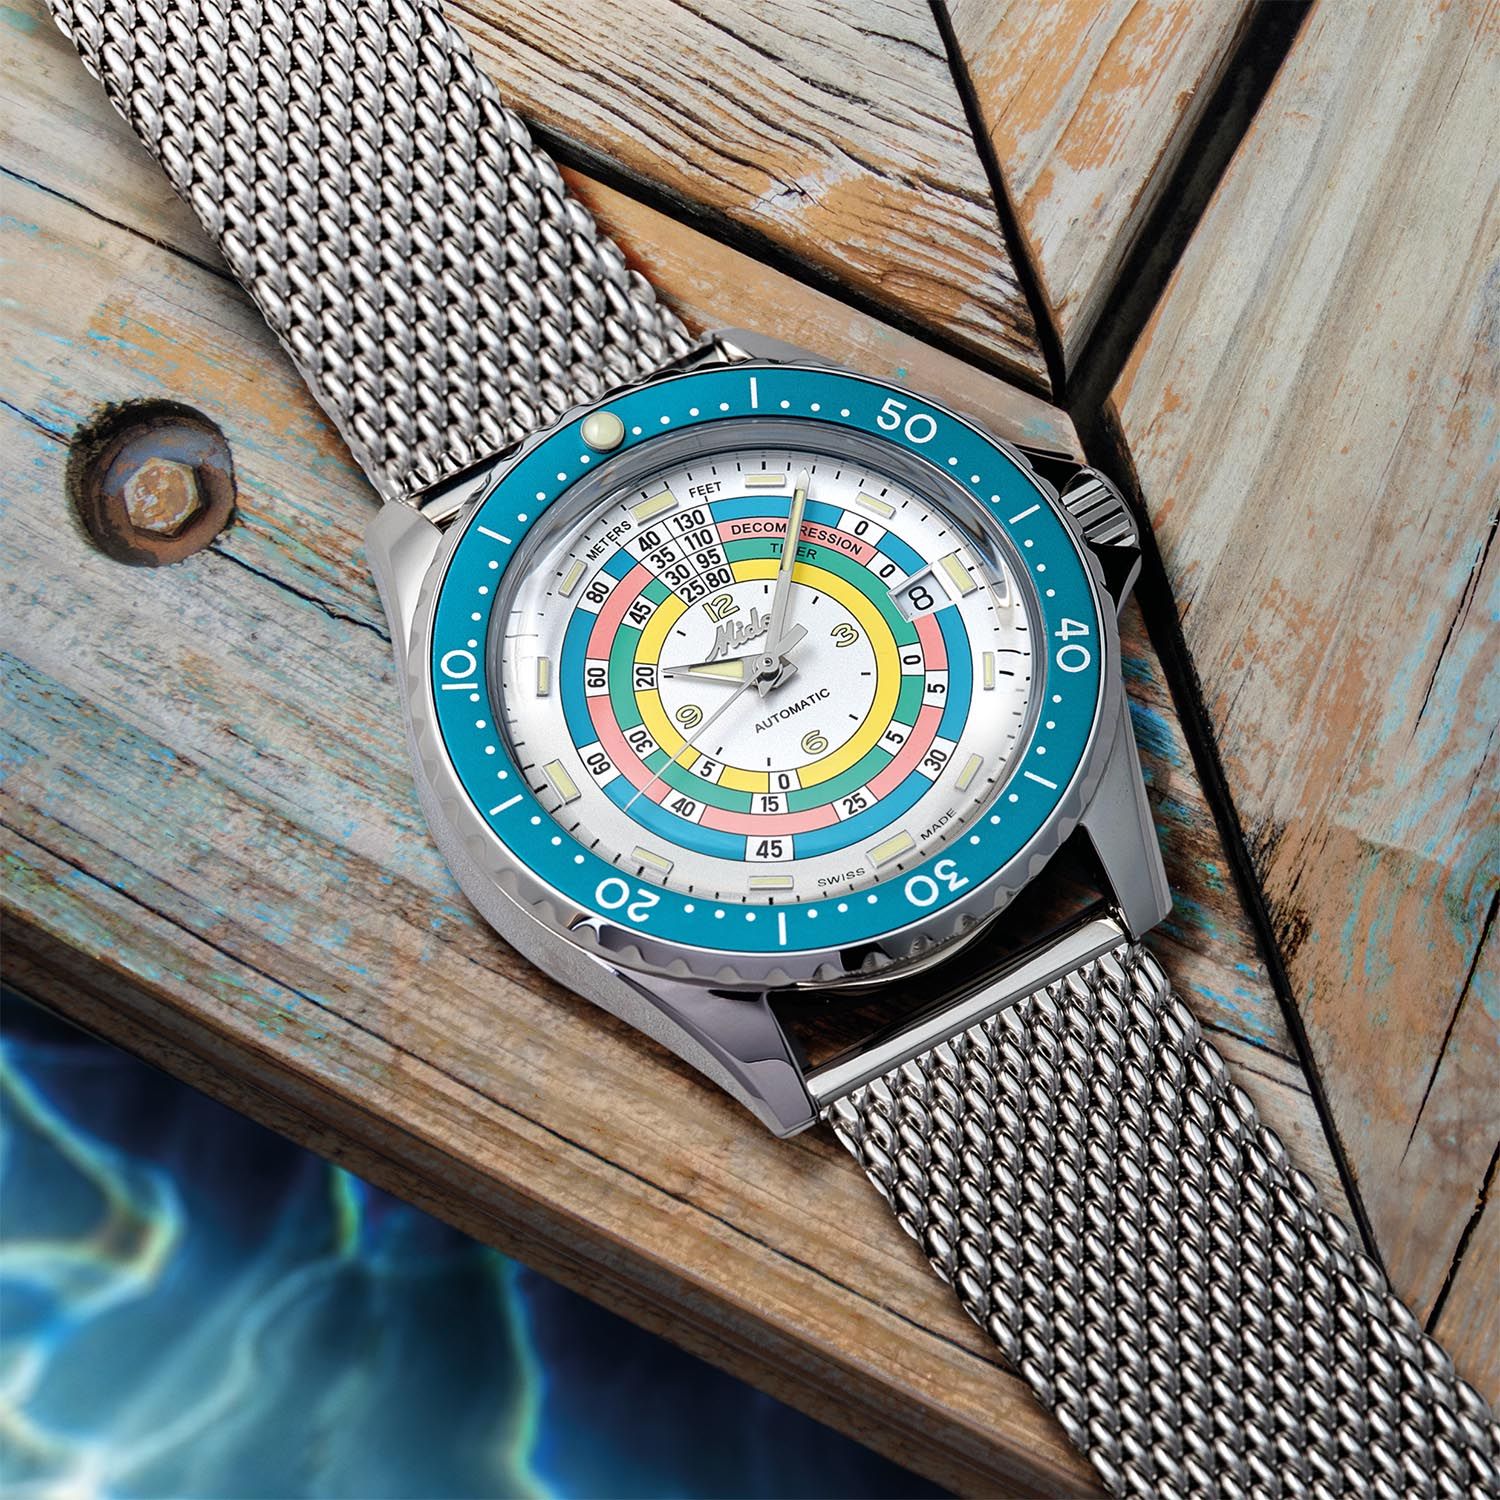 Mido Ocean Star Decompression Timer 1961 Turquoise Limited Edition - M026.807.11.031.00